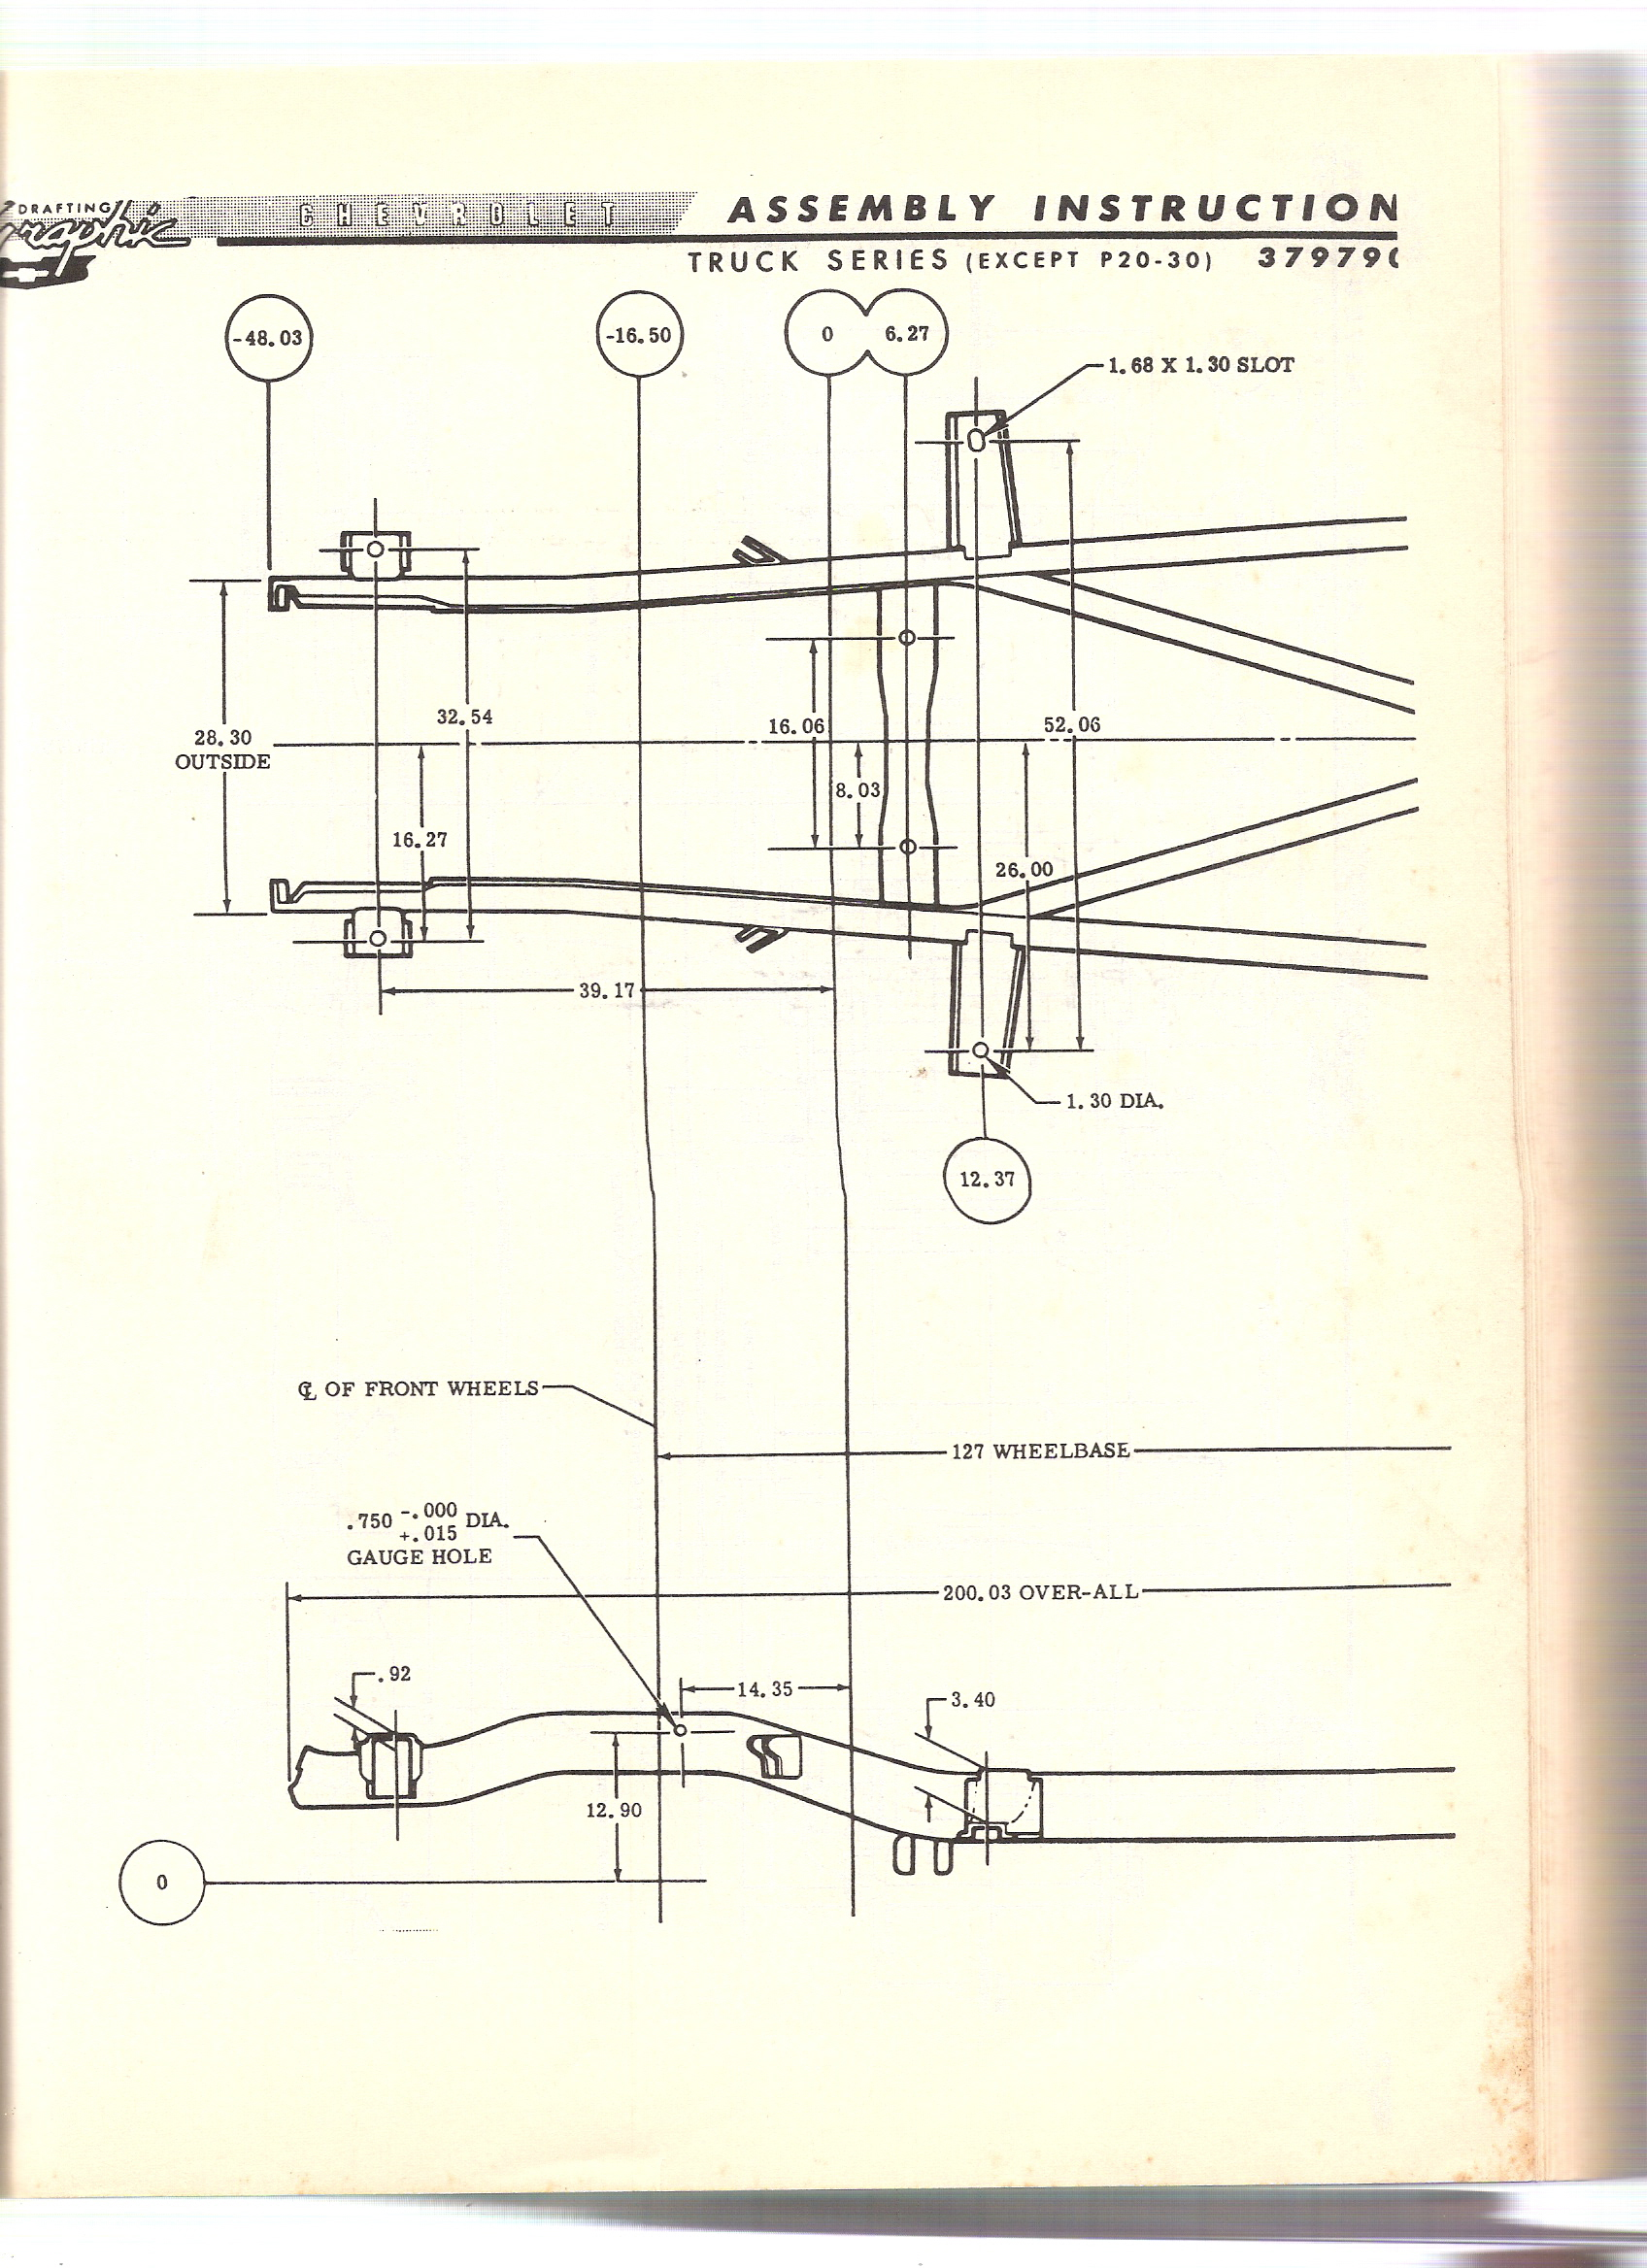 chevy gmc truck frame diagram the present 1960 66 chevy gmc truck frame diagram the 1947 present chevrolet gmc truck message board network